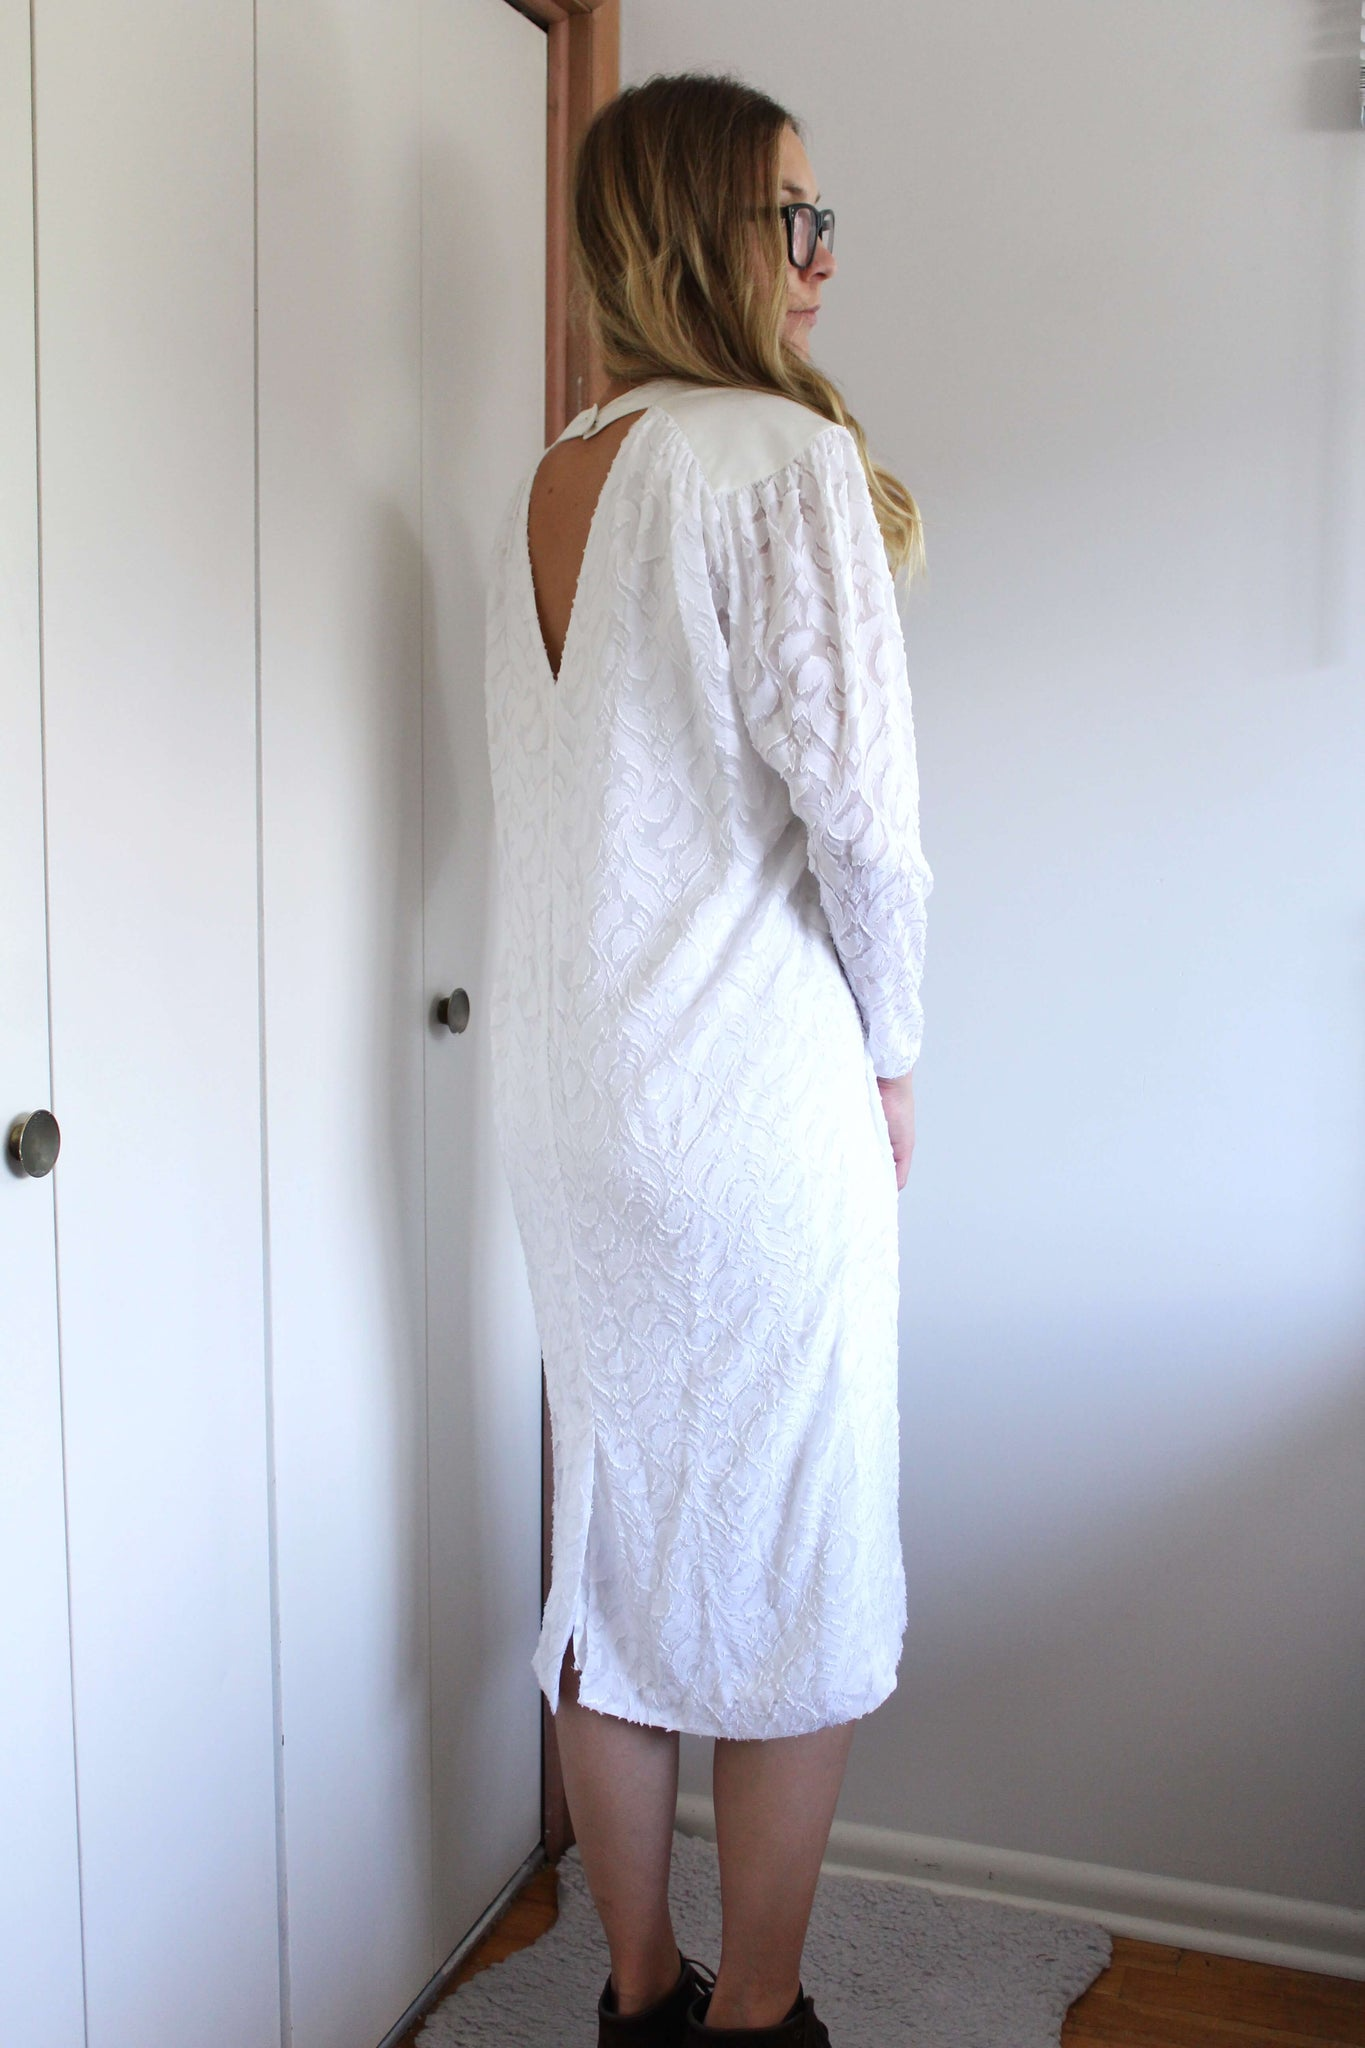 White Textured Dress - elizabeth o. vintage